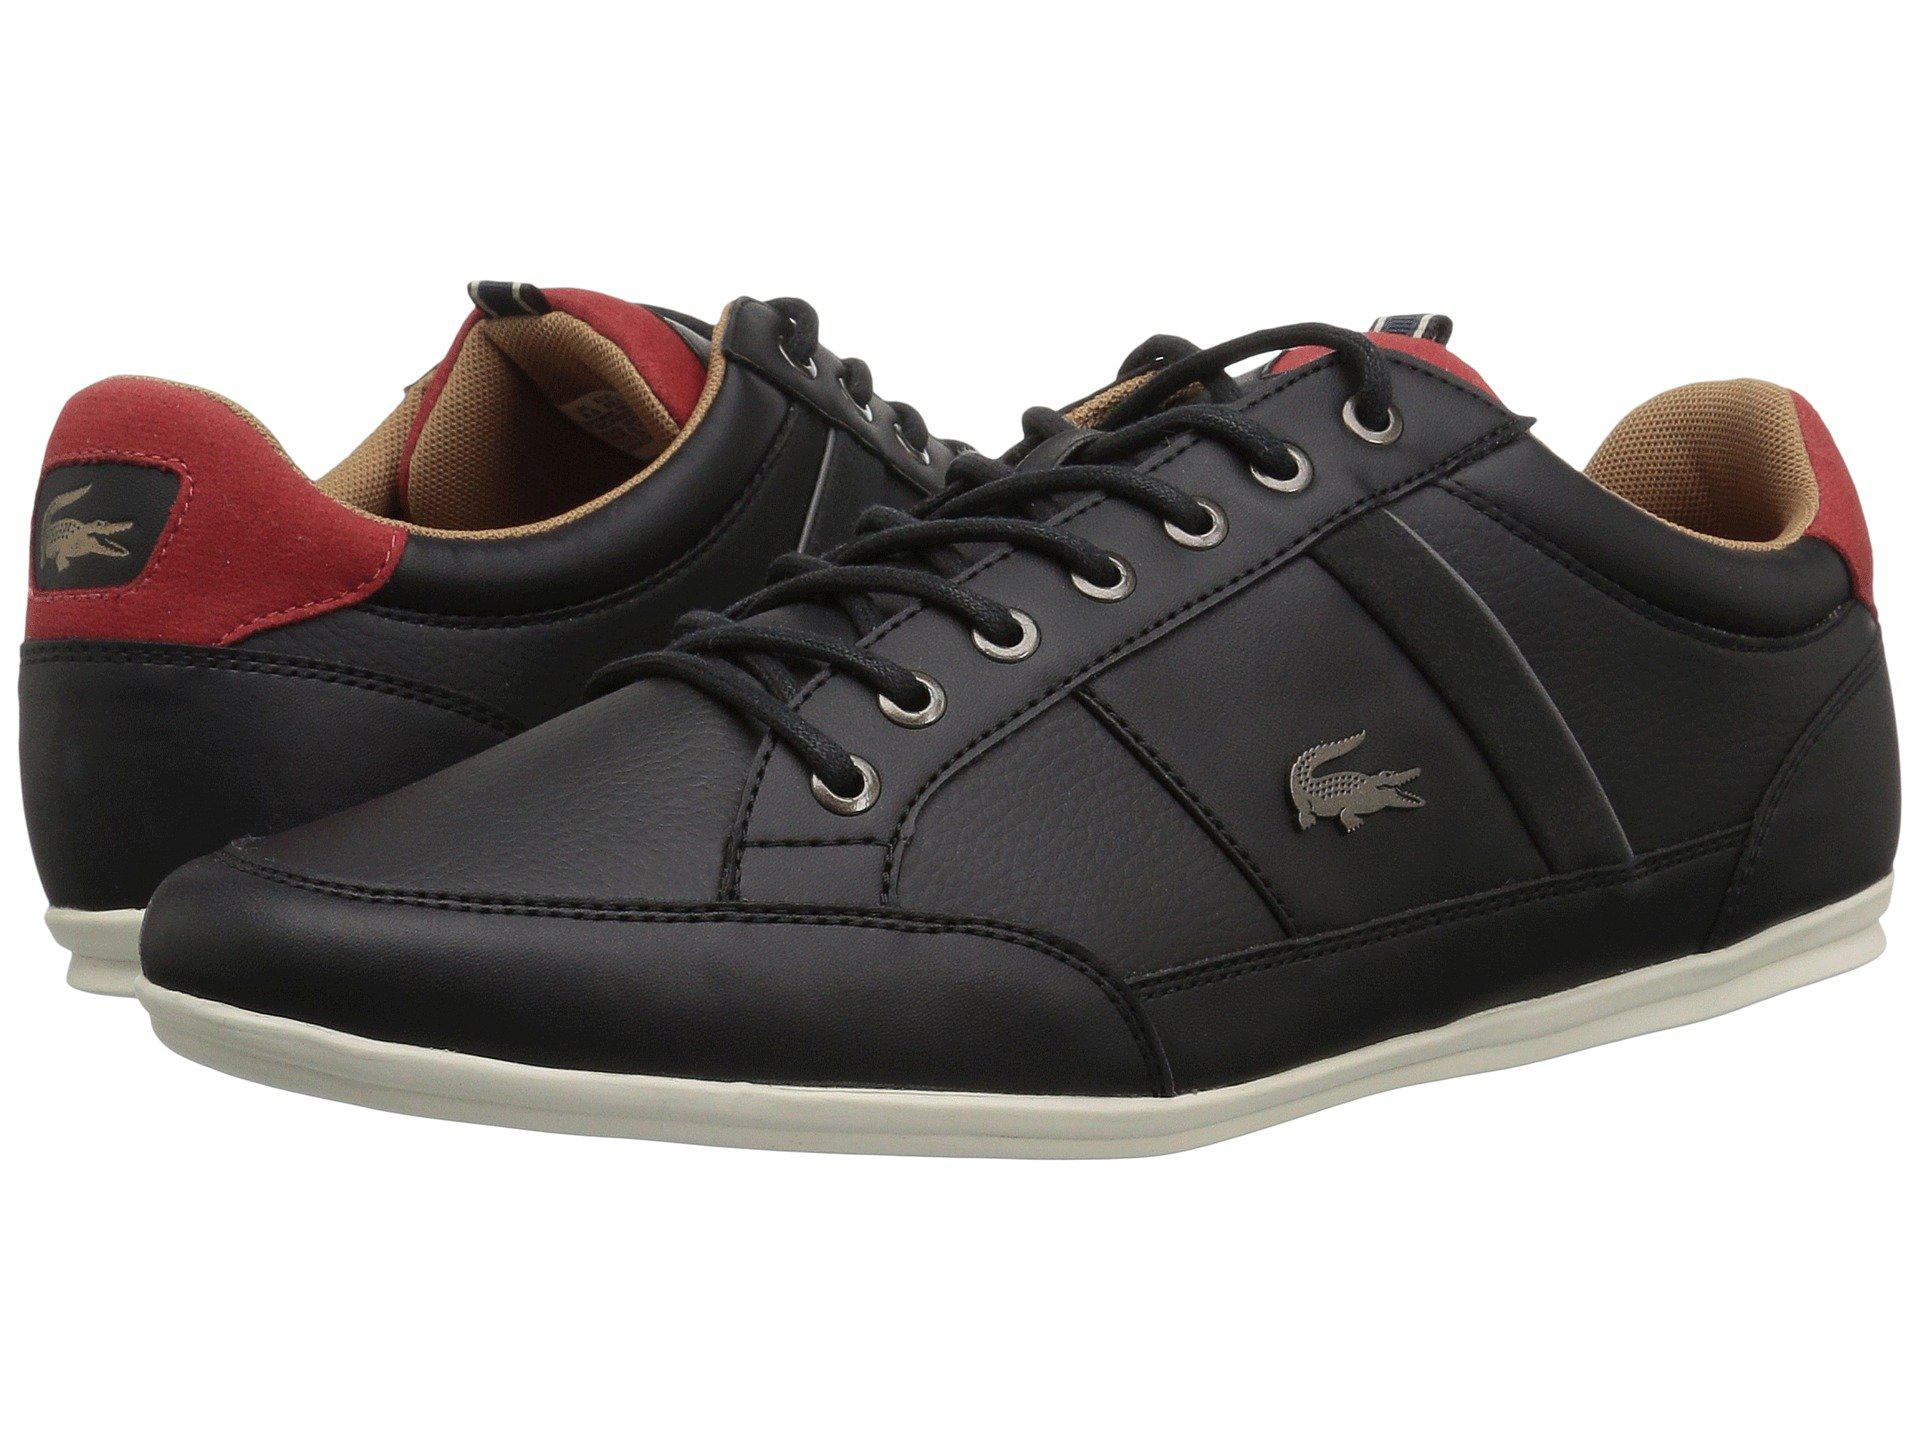 9a5f02c9885259 Lyst - Lacoste Chaymon 118 2 (black red) Men s Shoes in Black for Men